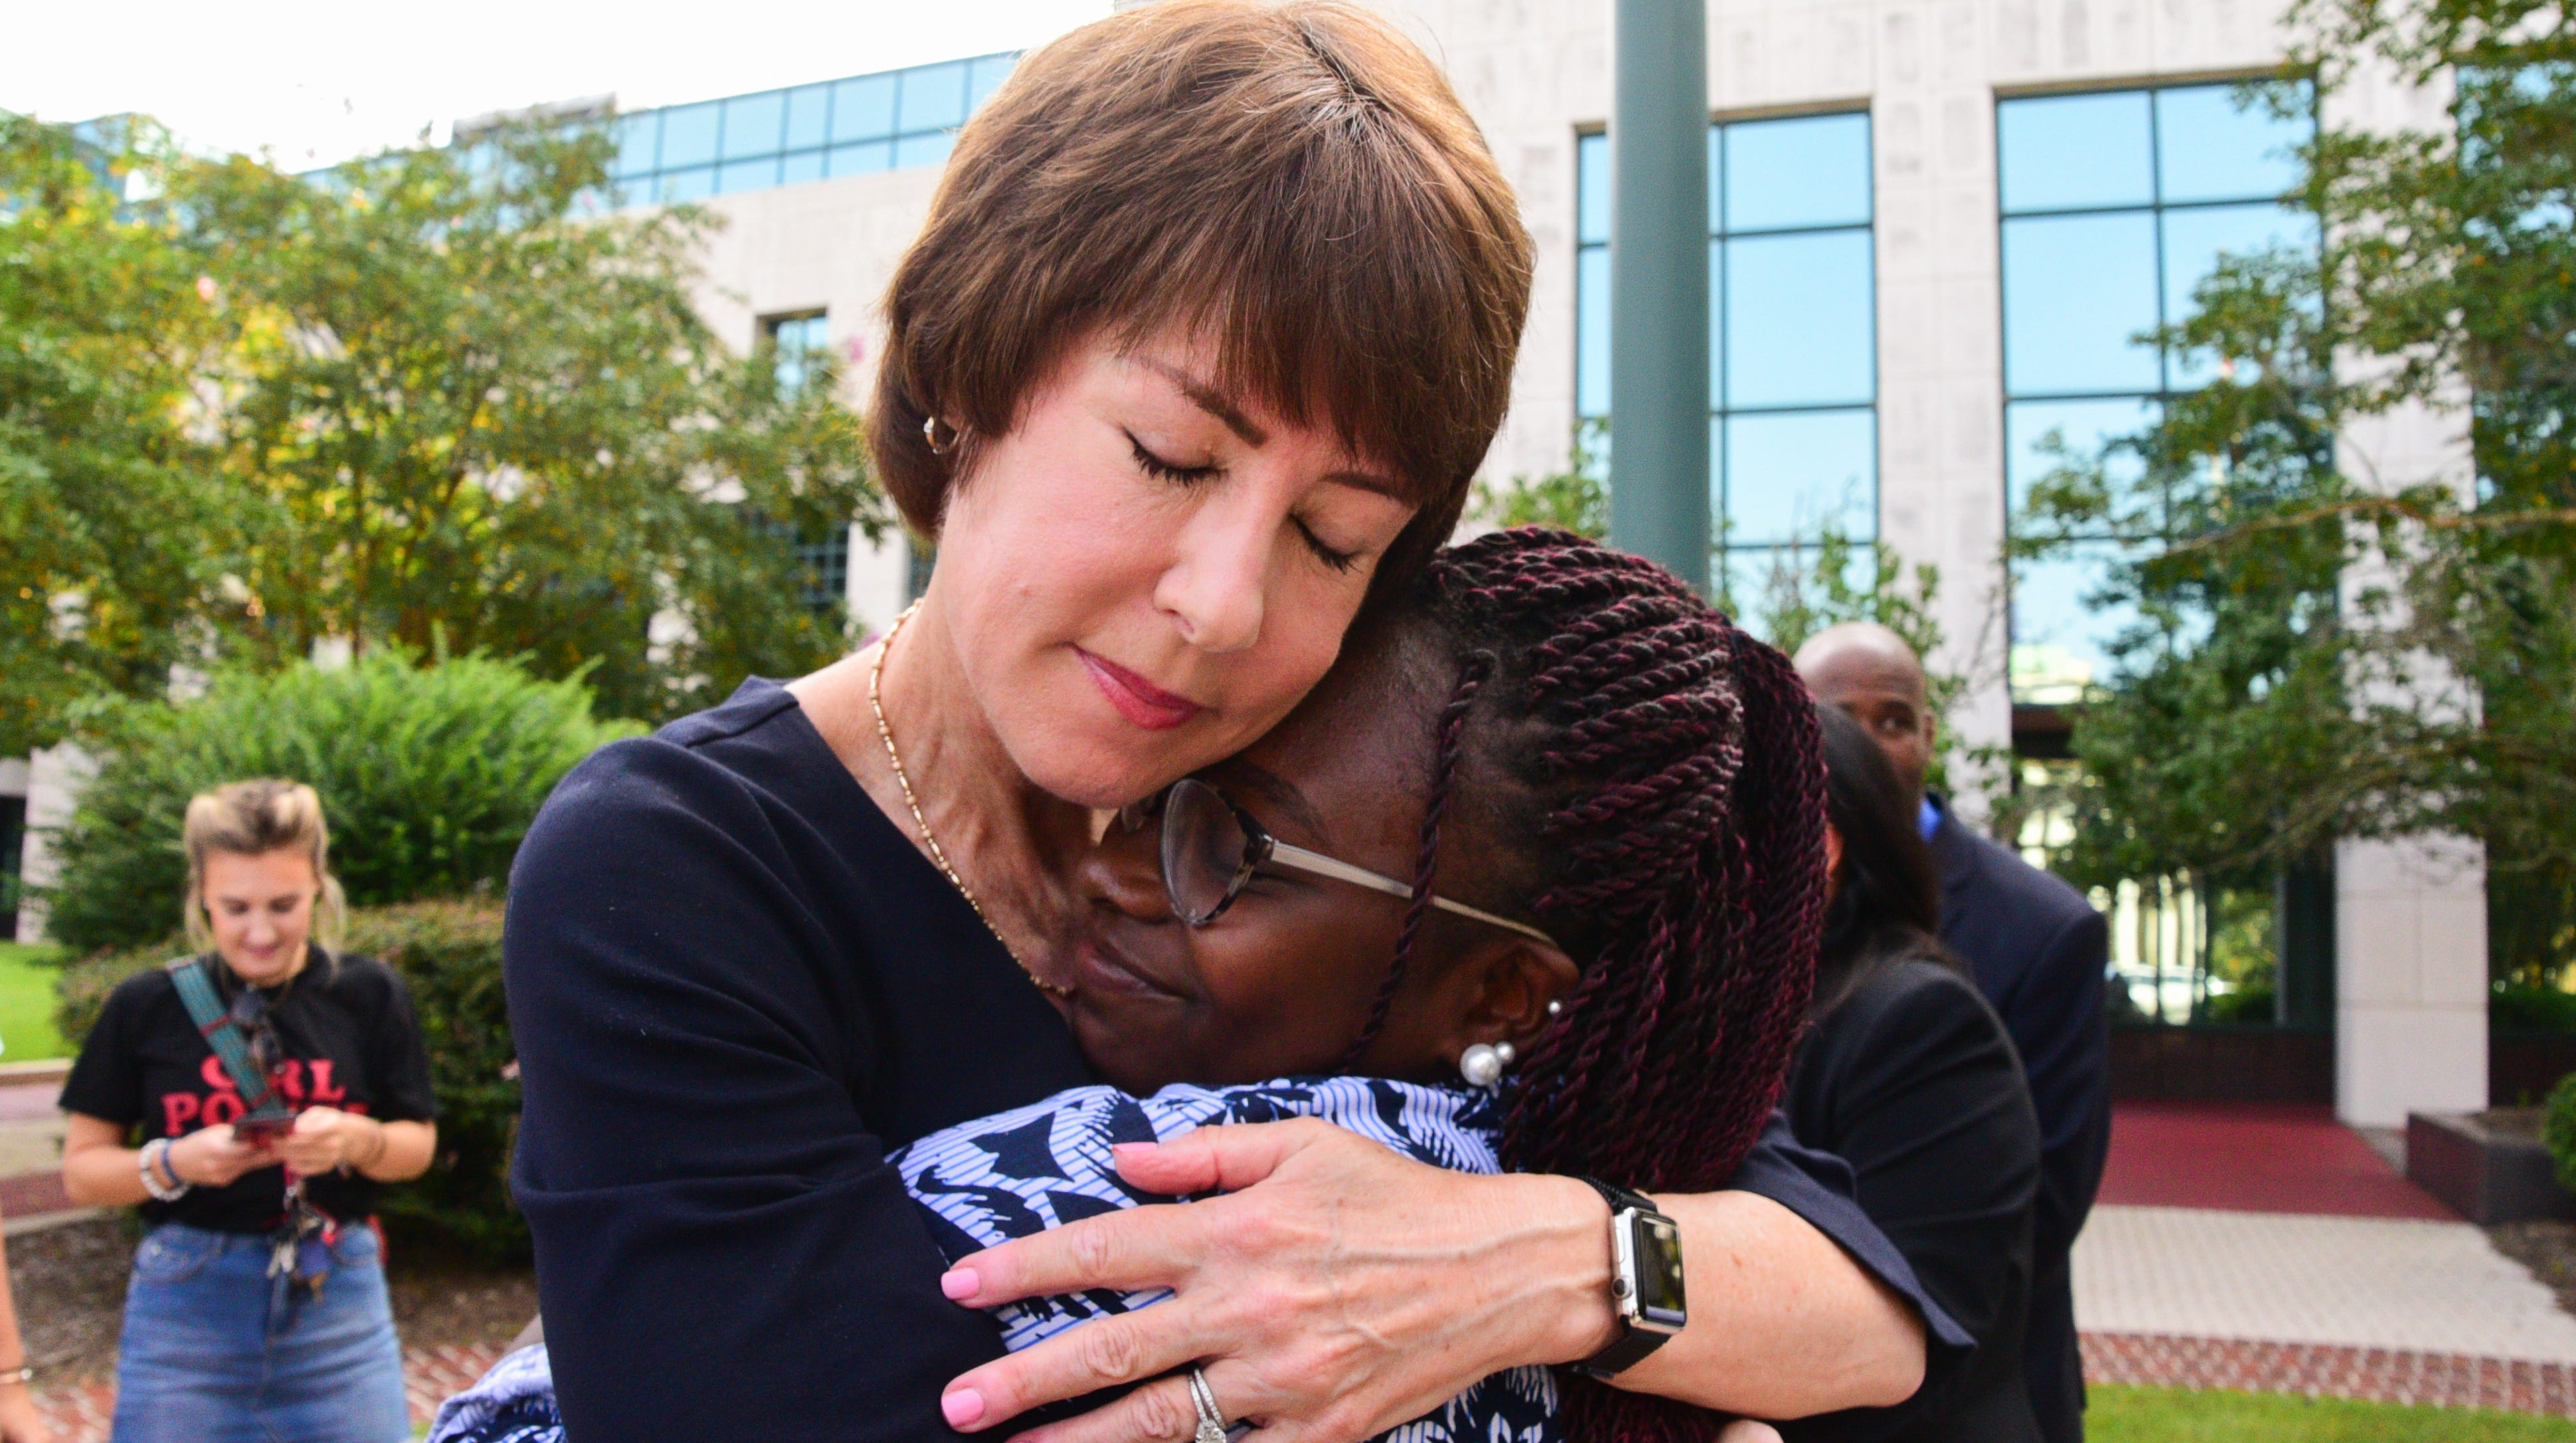 Florida democratic gubernational candidate Gwen Graham embraces supporters outside of the Leon County Courthouse on Thursday.